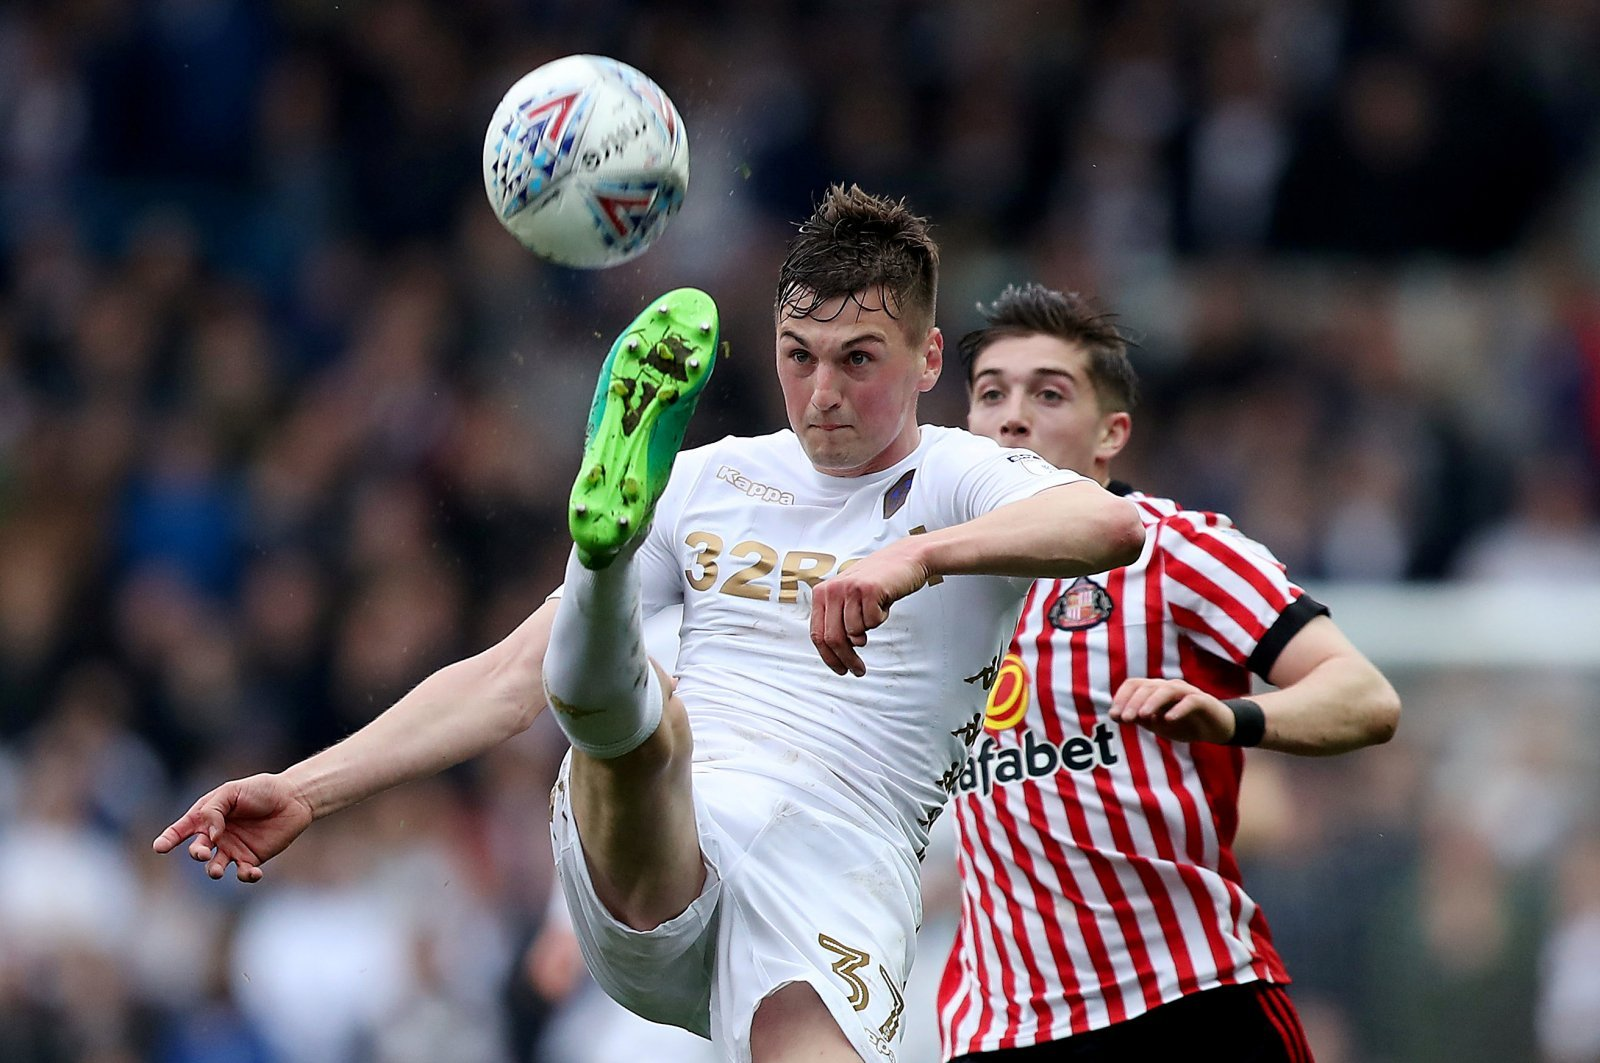 Leeds' Paudie O'Connor set to join Bradford on loan